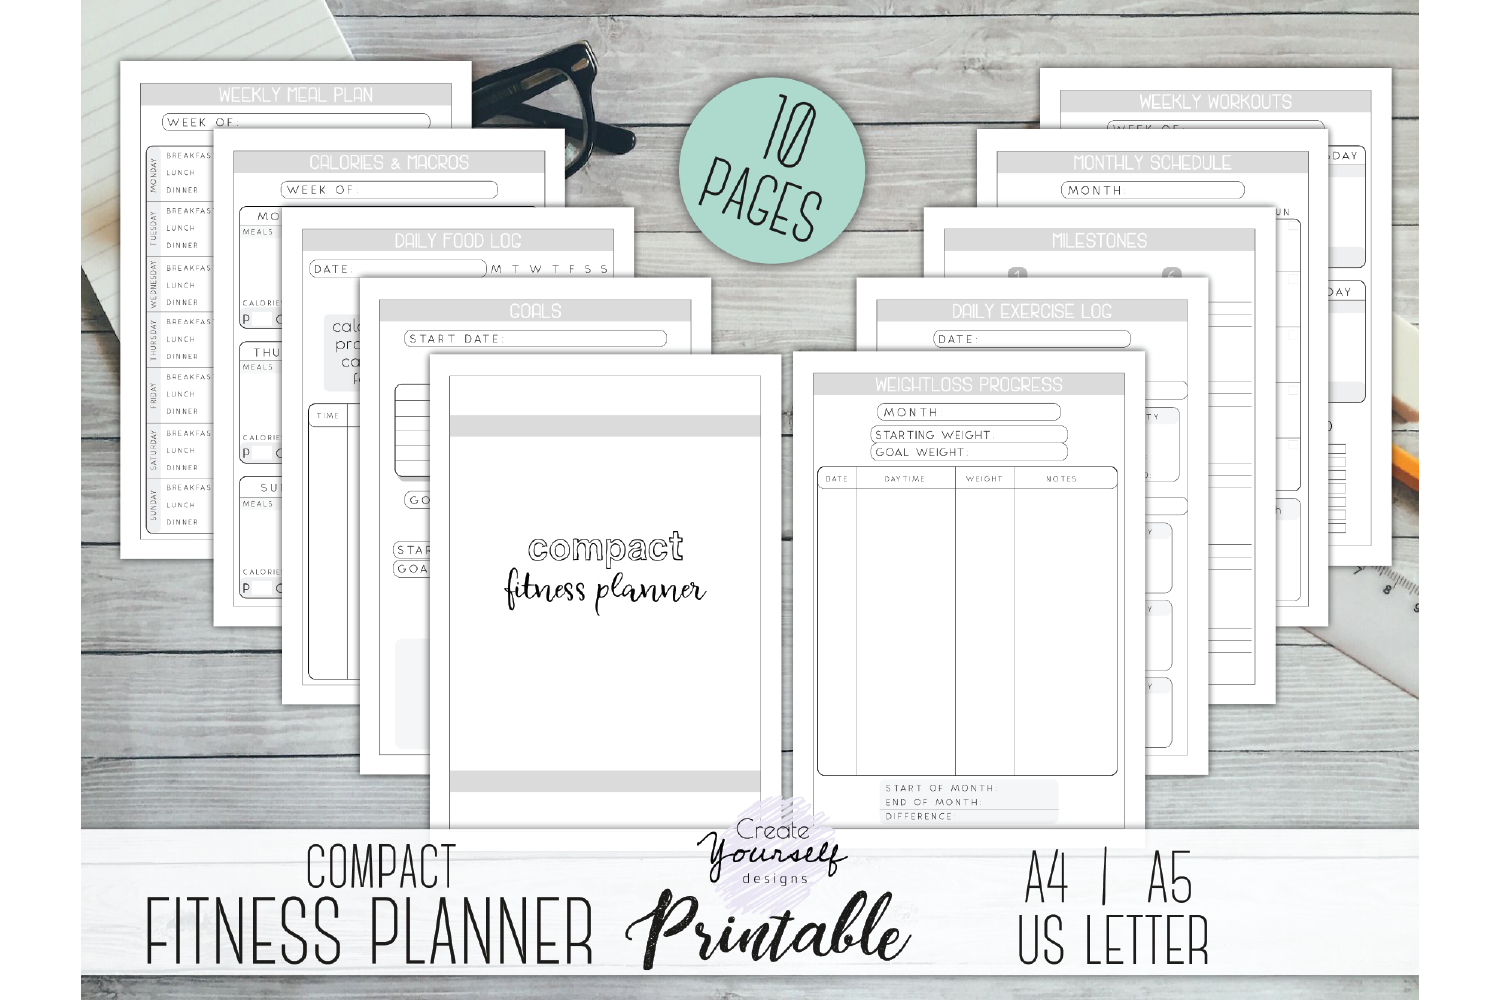 image relating to Fitness Planner Printable named Health planner printable - in shape magazine, pounds reduction tracker